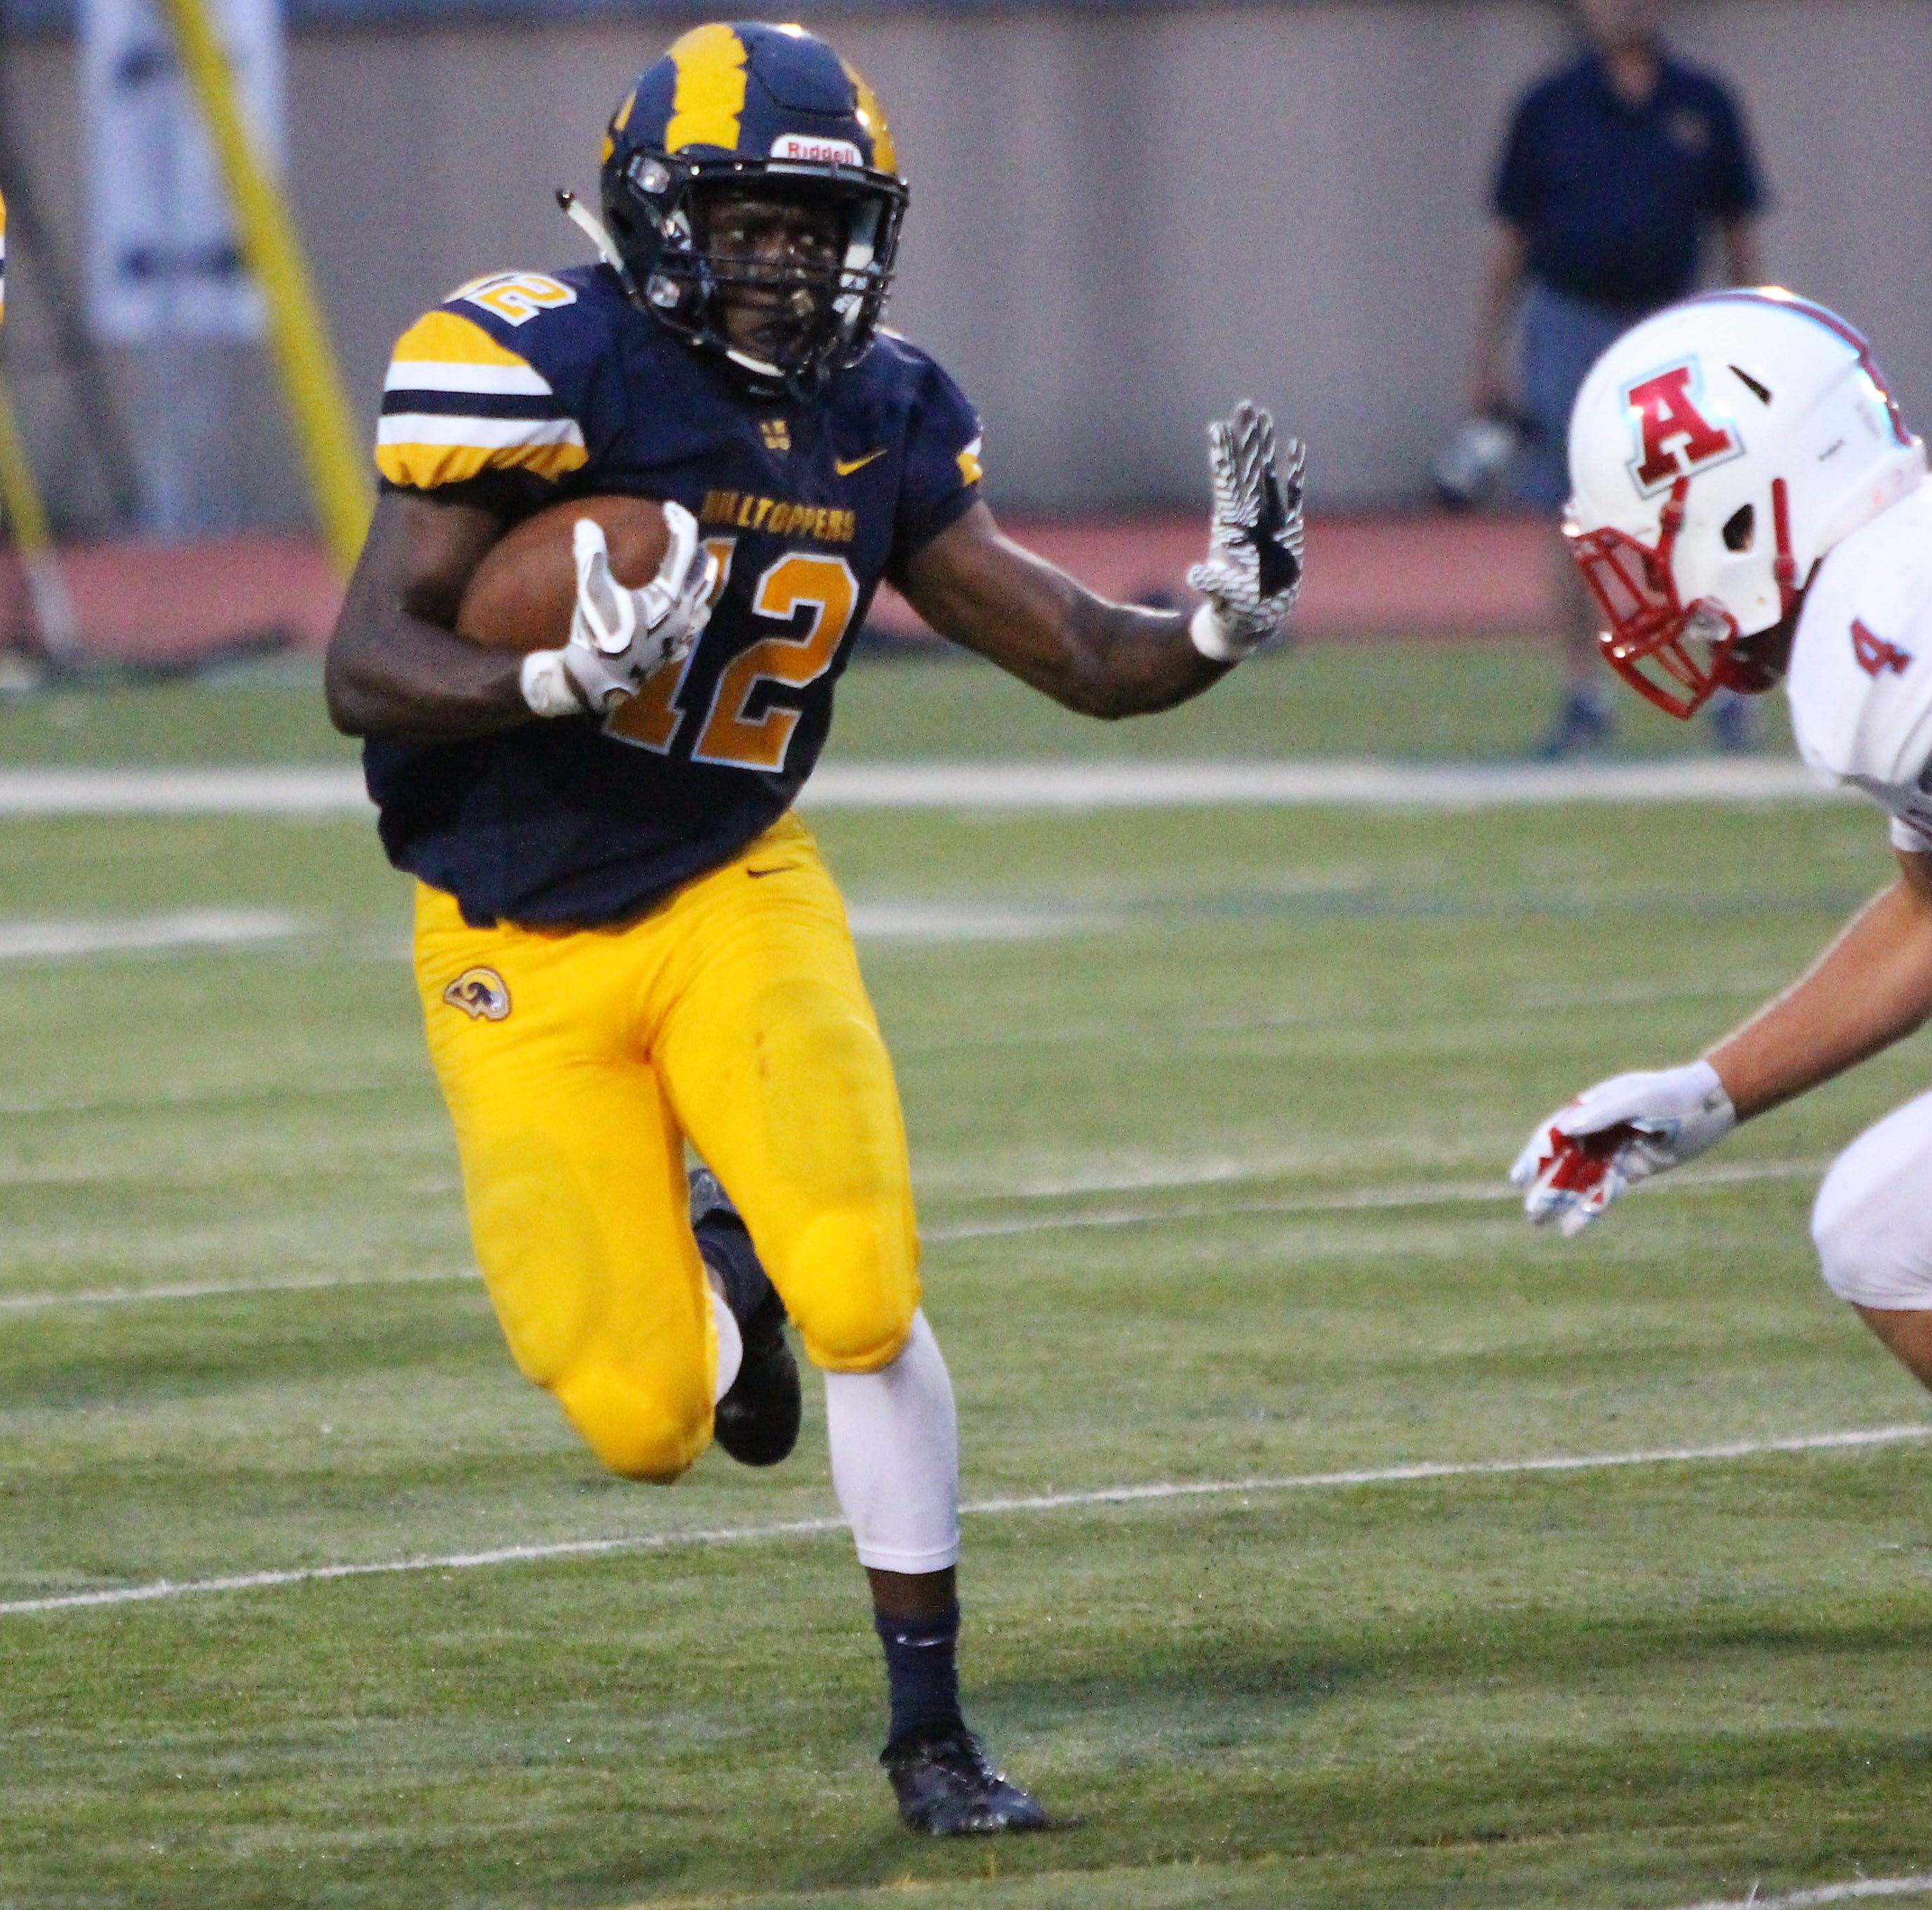 Five takeaways: Marquette's offensive line, Brown-Williams shine in victory over Arrowhead